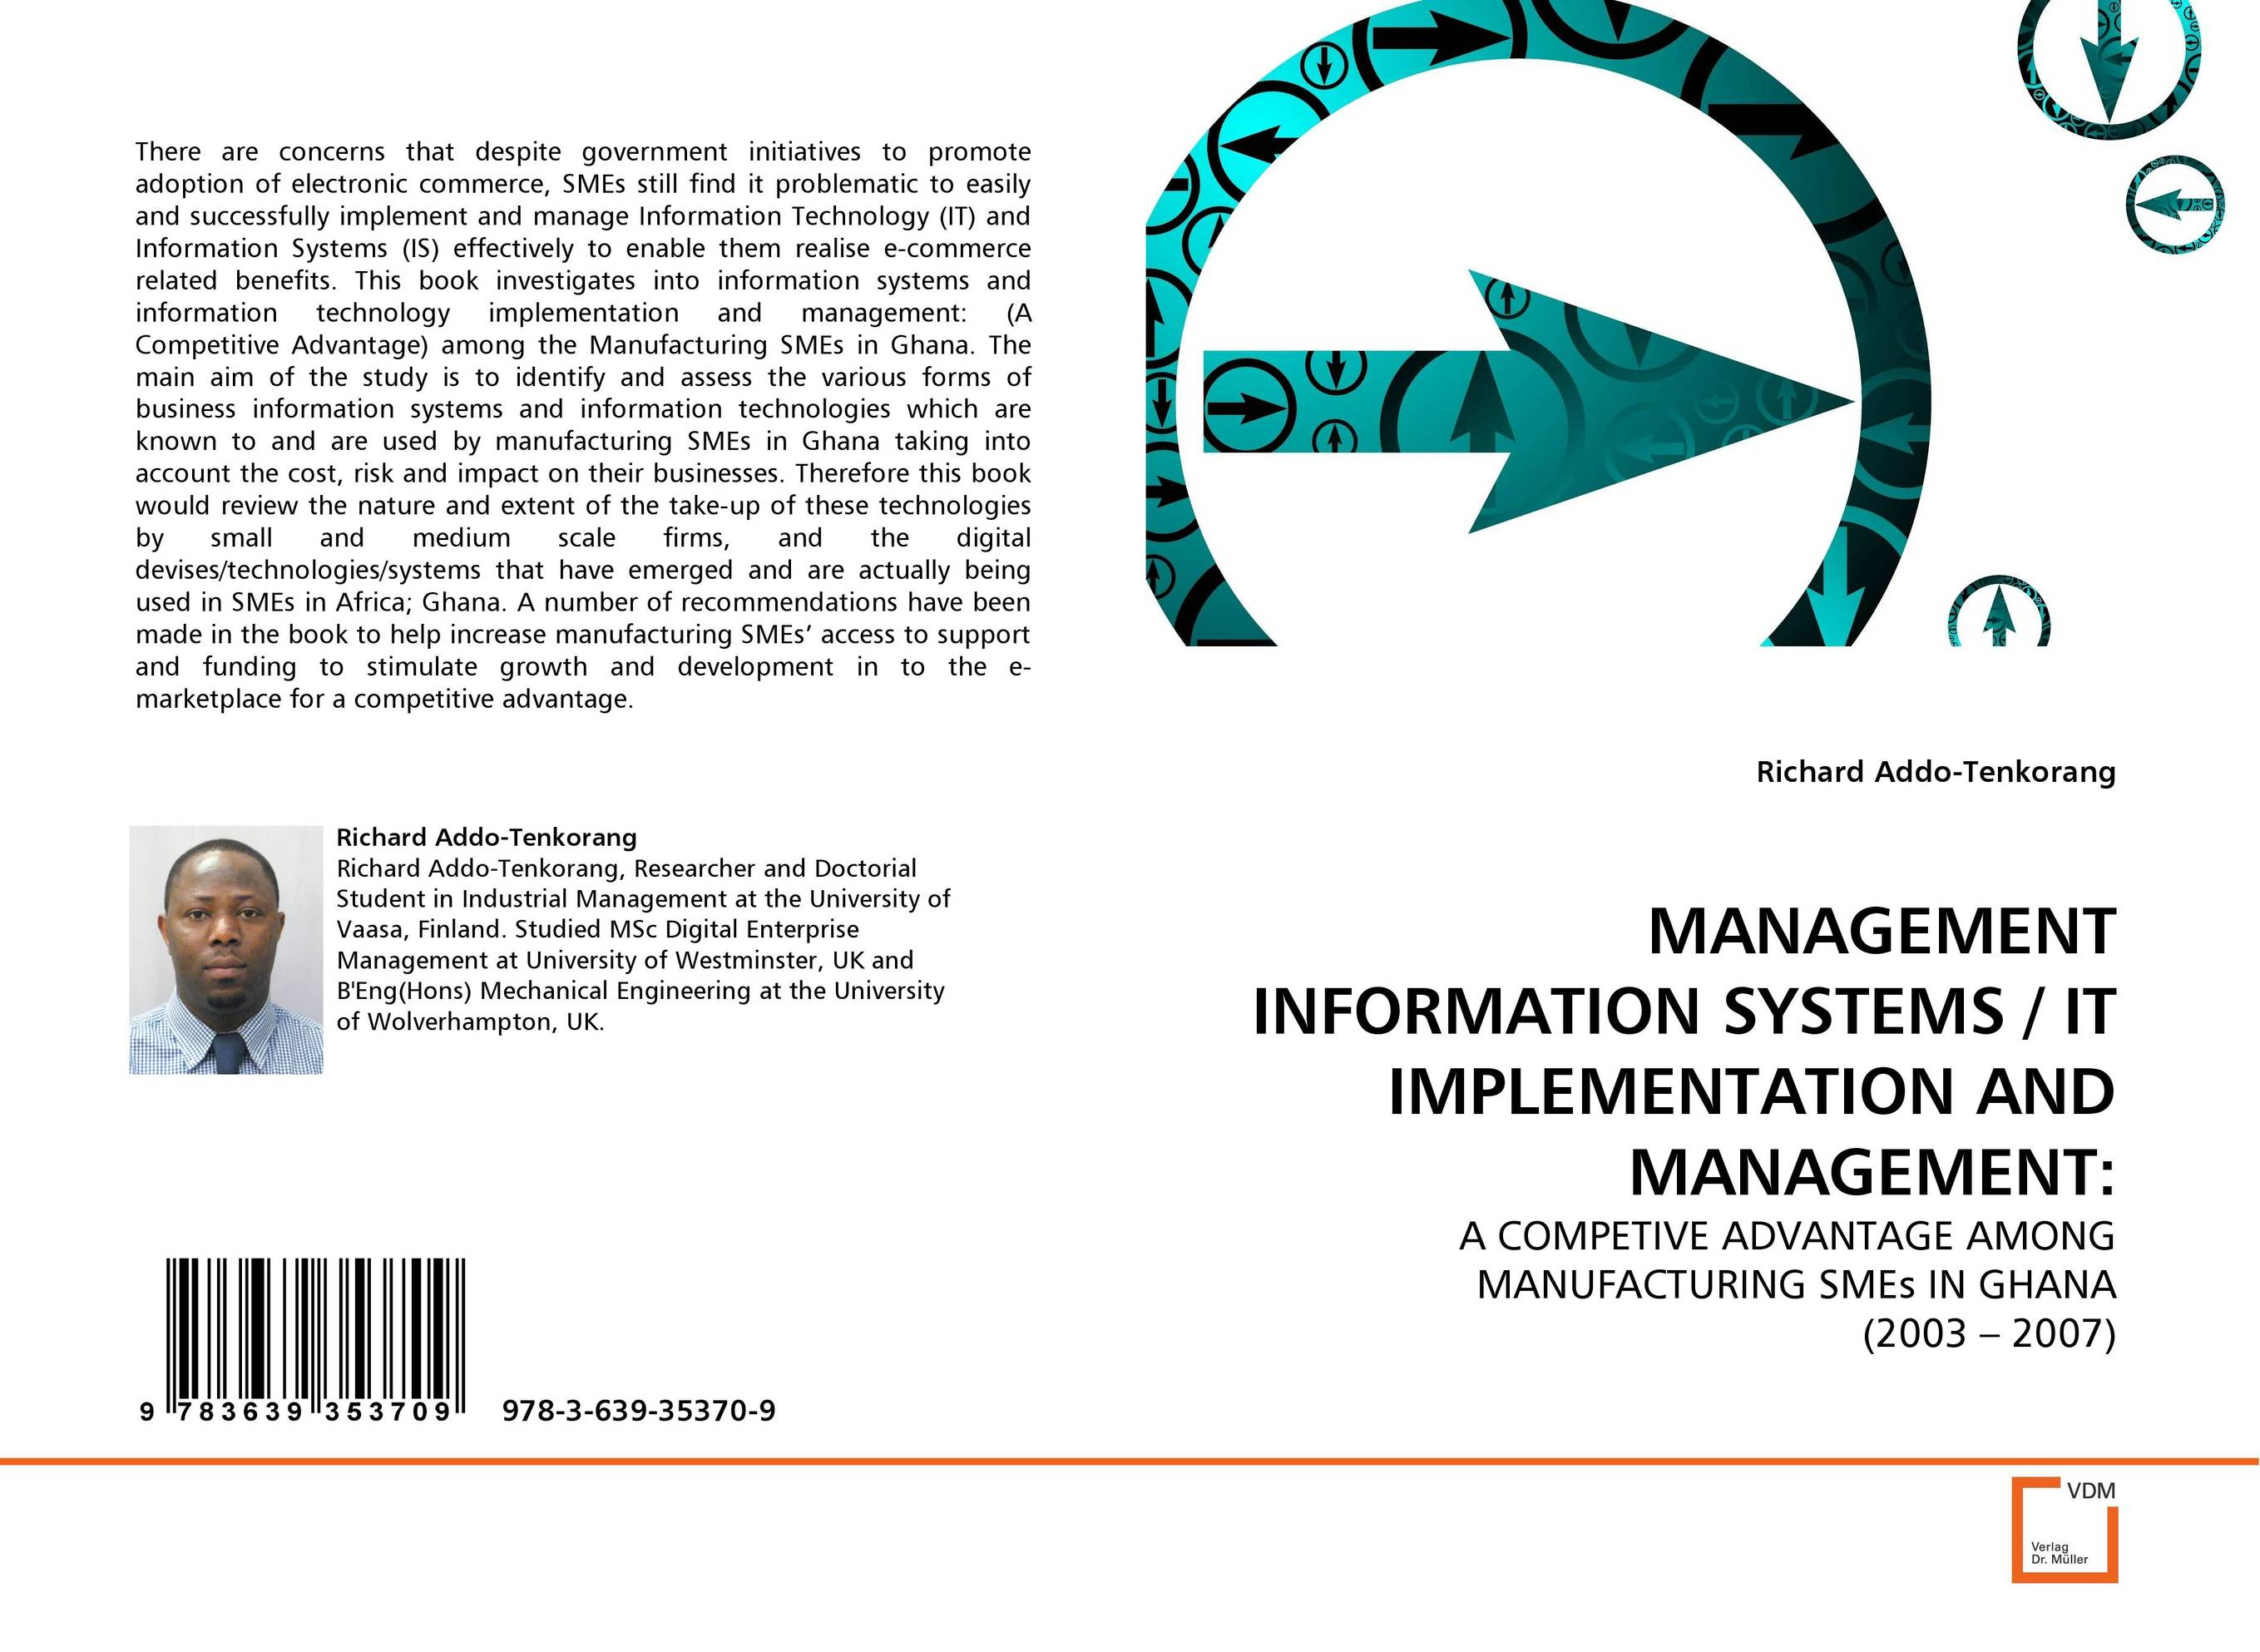 MANAGEMENT INFORMATION SYSTEMS / IT IMPLEMENTATION AND MANAGEMENT: management information systems